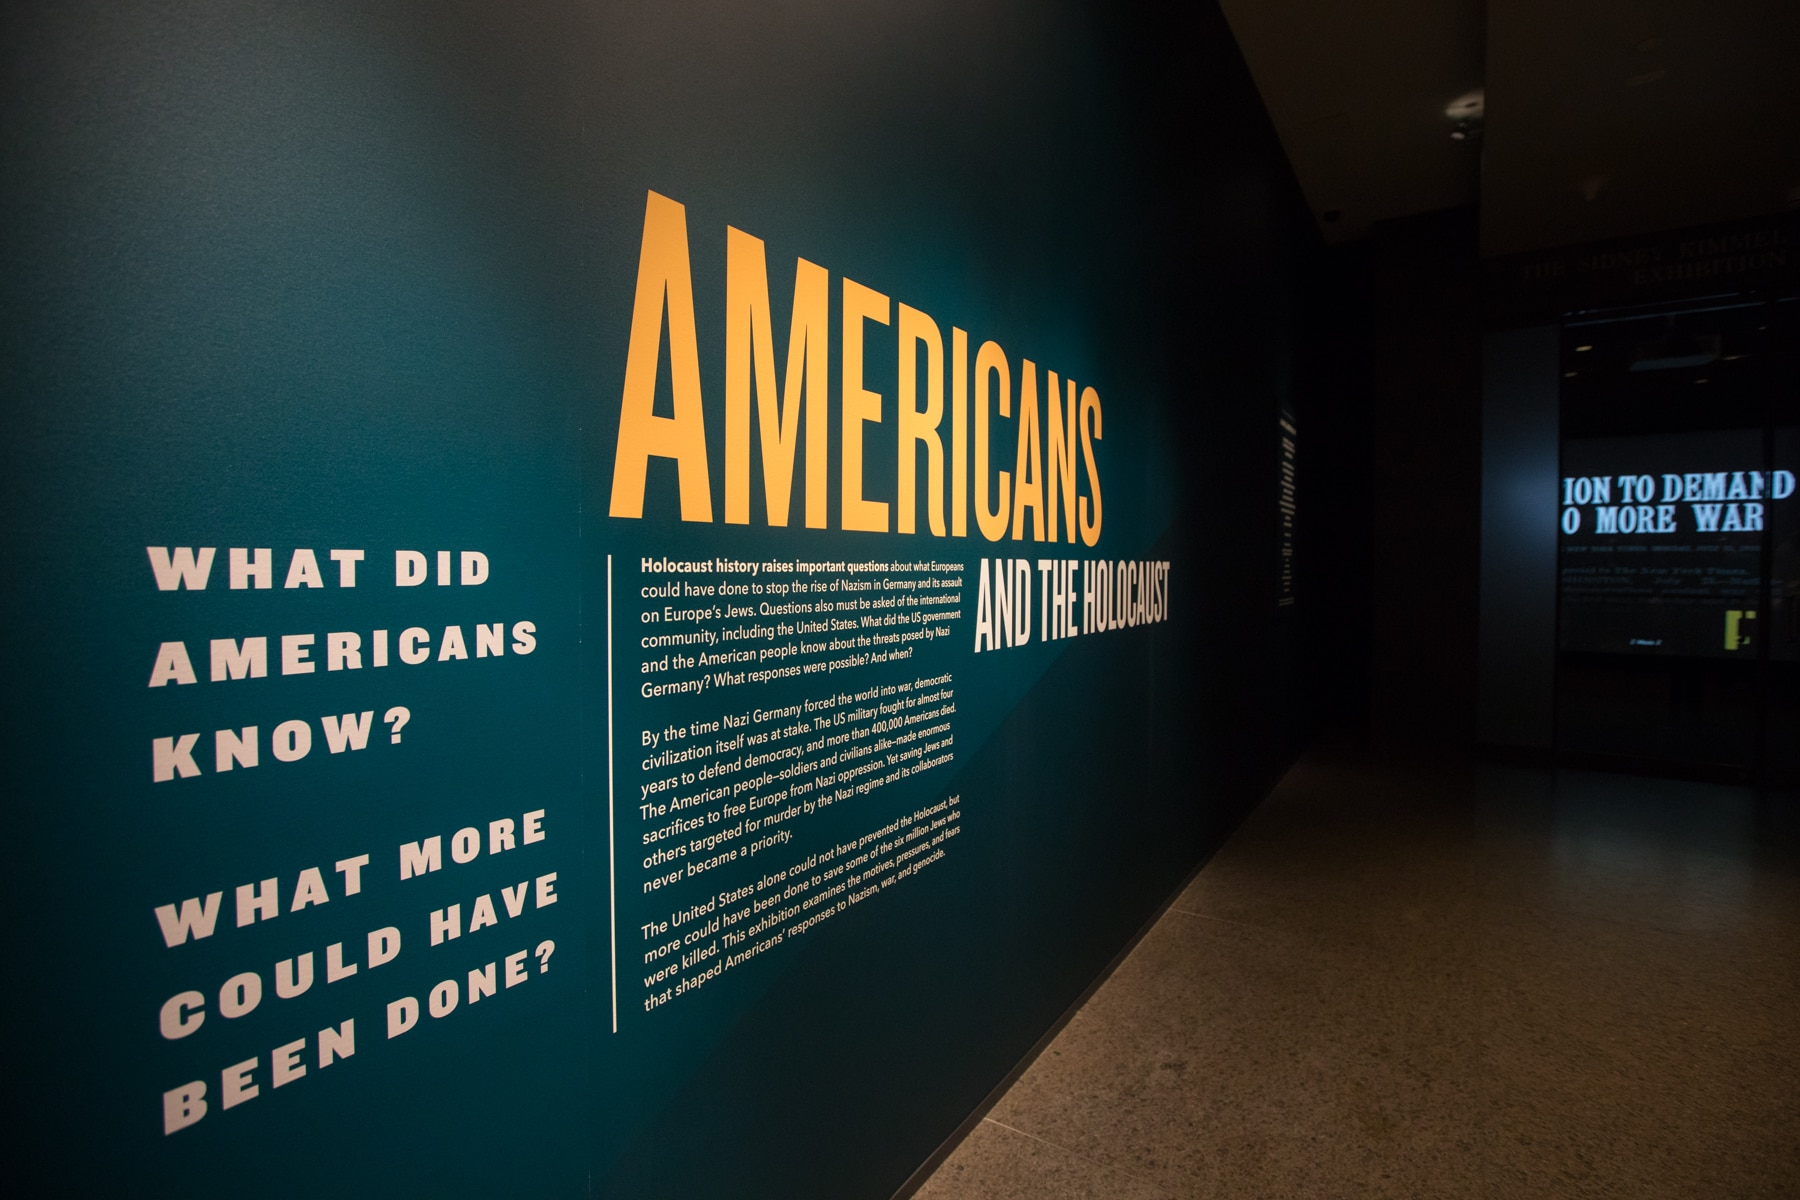 """What Did Americans Know? (Photo courtesy the U.S. Holocaust Memorial Museum from the """"Americans and the Holocaust"""" museum and online exhibits)"""